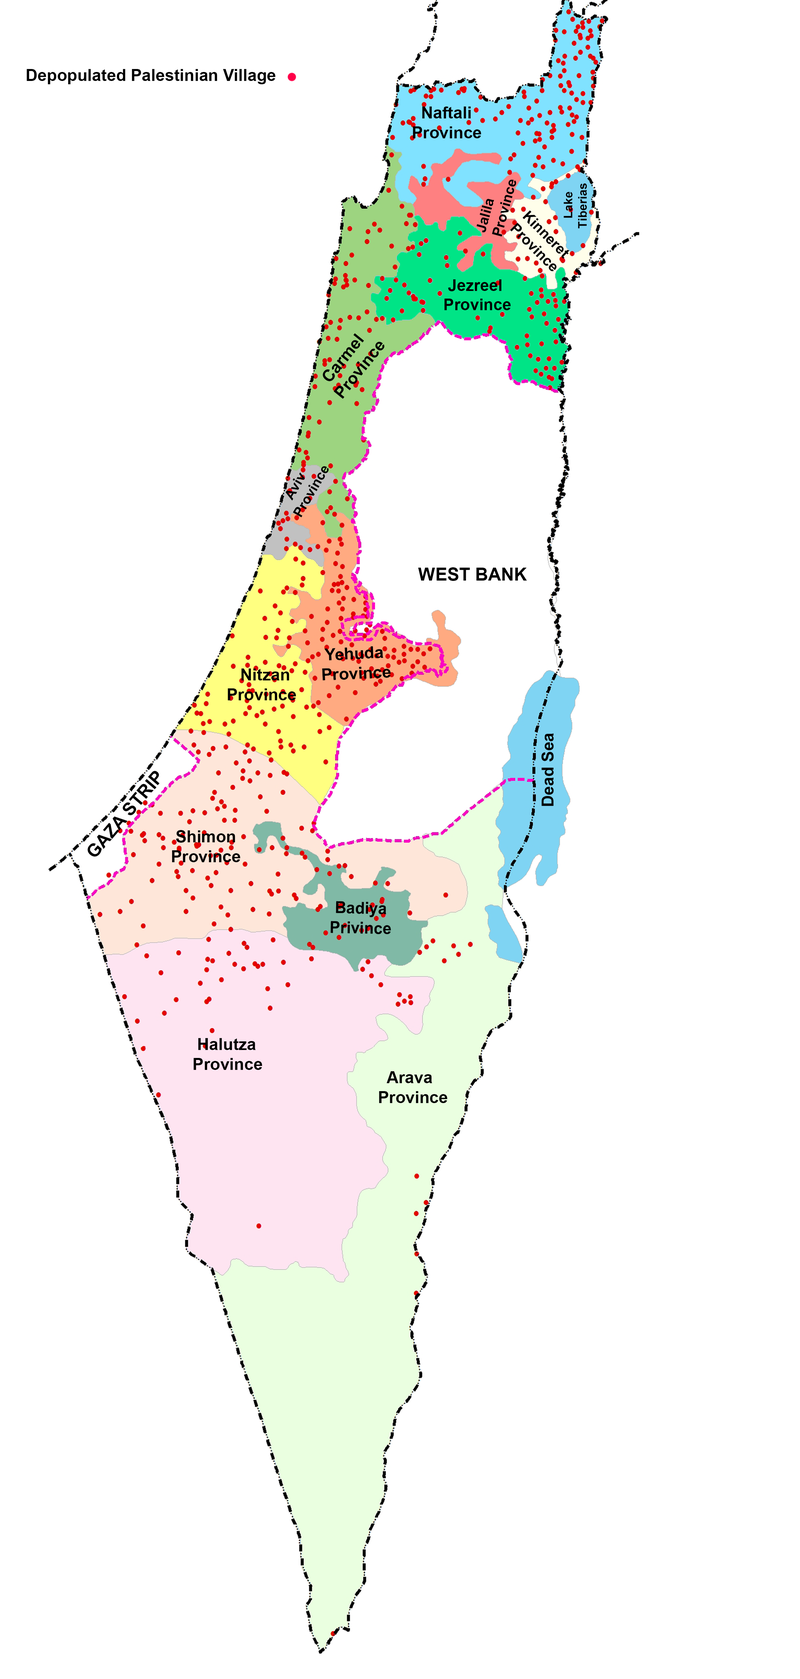 Beer Sheva Israel Map%0A Map    Depopulated villages  shown as red dots  in relation to proposed  division of presentday Israel into ten Jewish and two Arab provinces